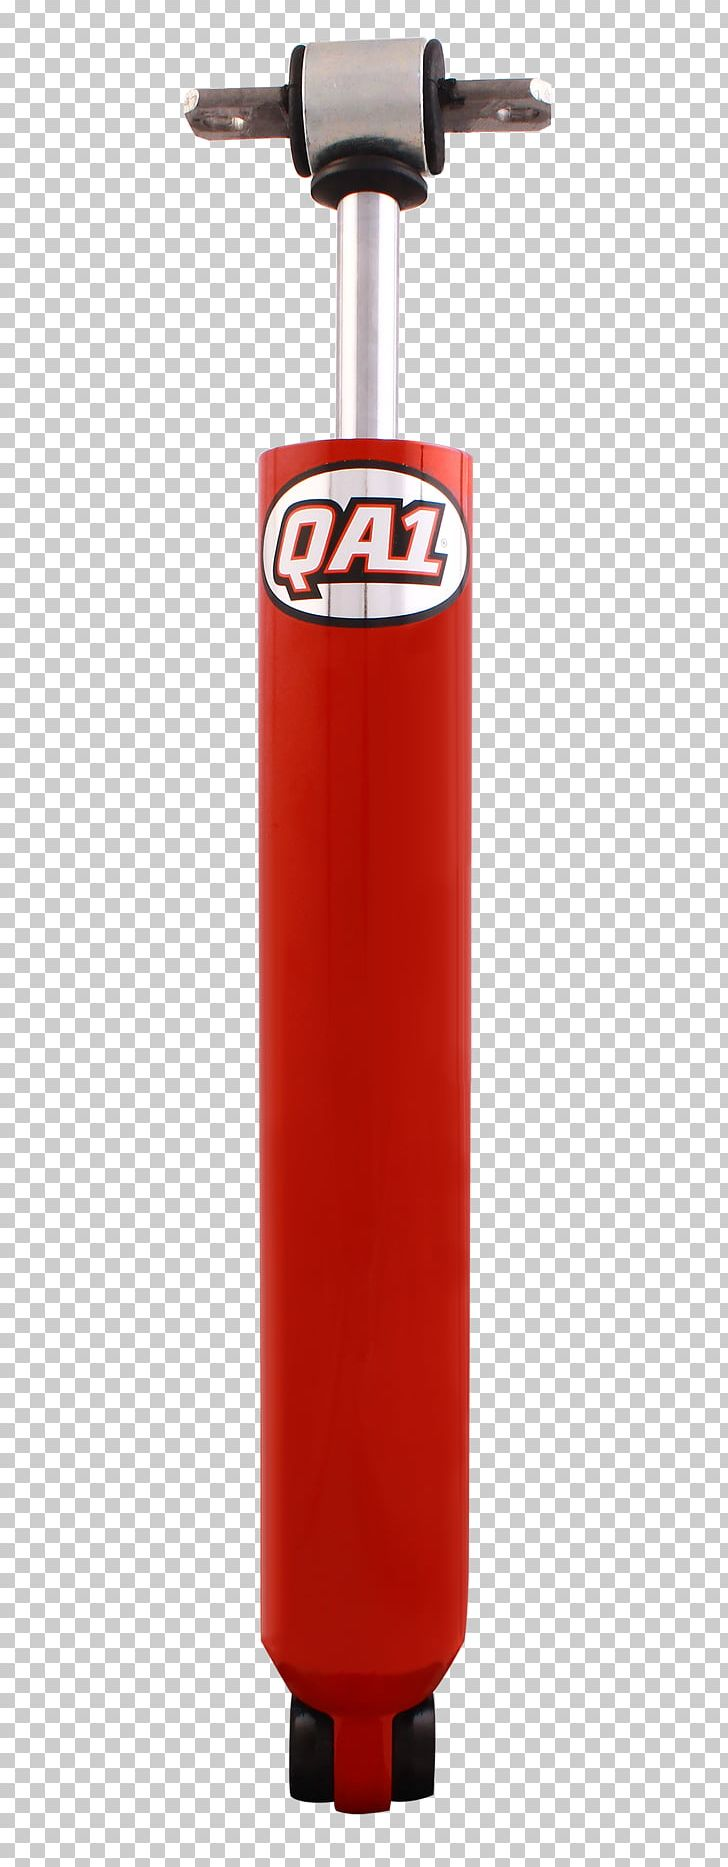 Shock Tube Cylinder Stock QA1 Precision Products Inc PNG, Clipart, Circle, Cylinder, Gas, Hardware, Qa1 Precision Products Inc Free PNG Download